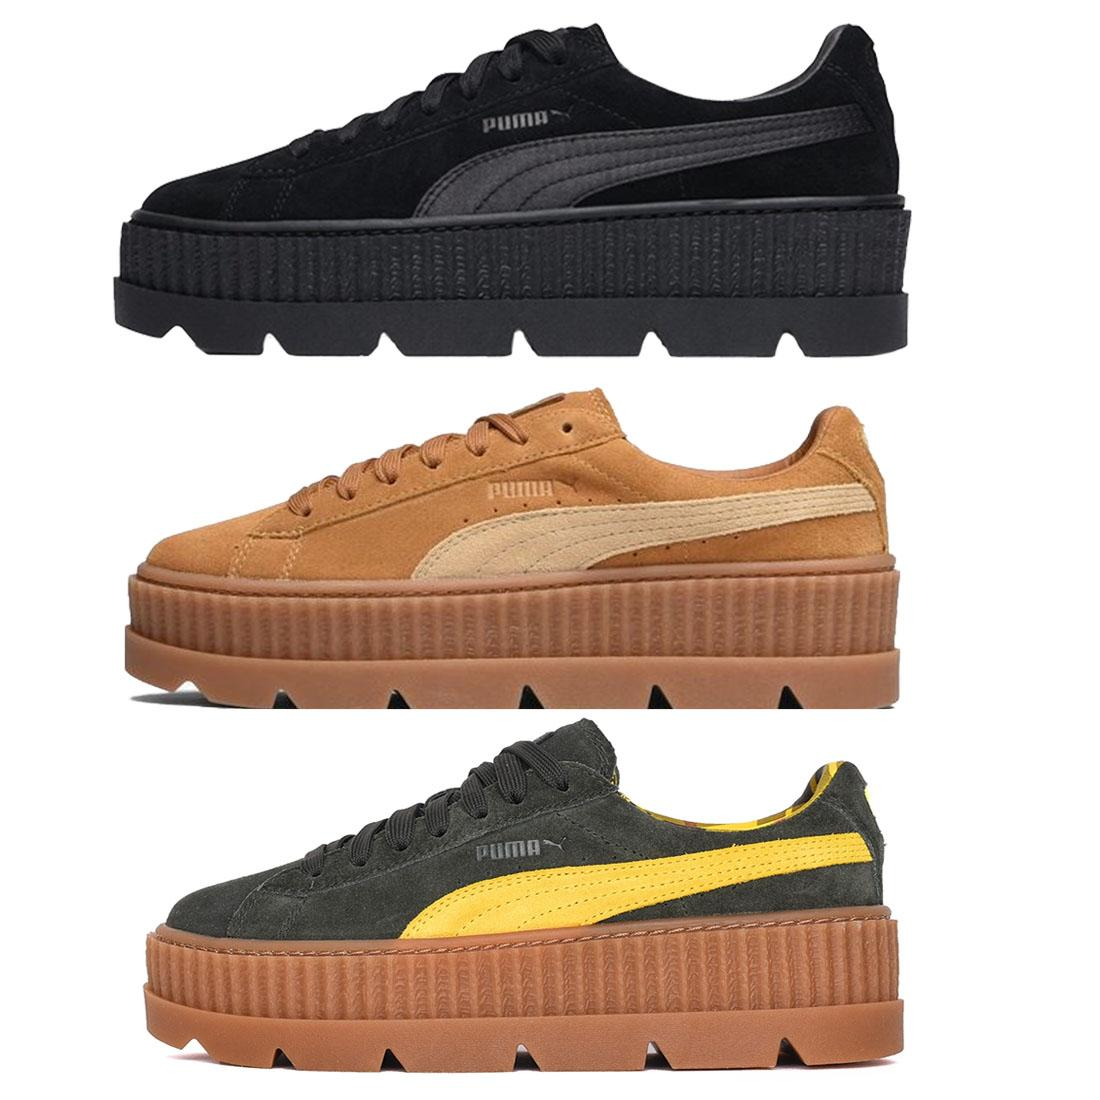 c46c5dc155 Details about PUMA Fenty X Rihanna Cleated Creeper Shoes Ladies Black Brown  Green Trainers